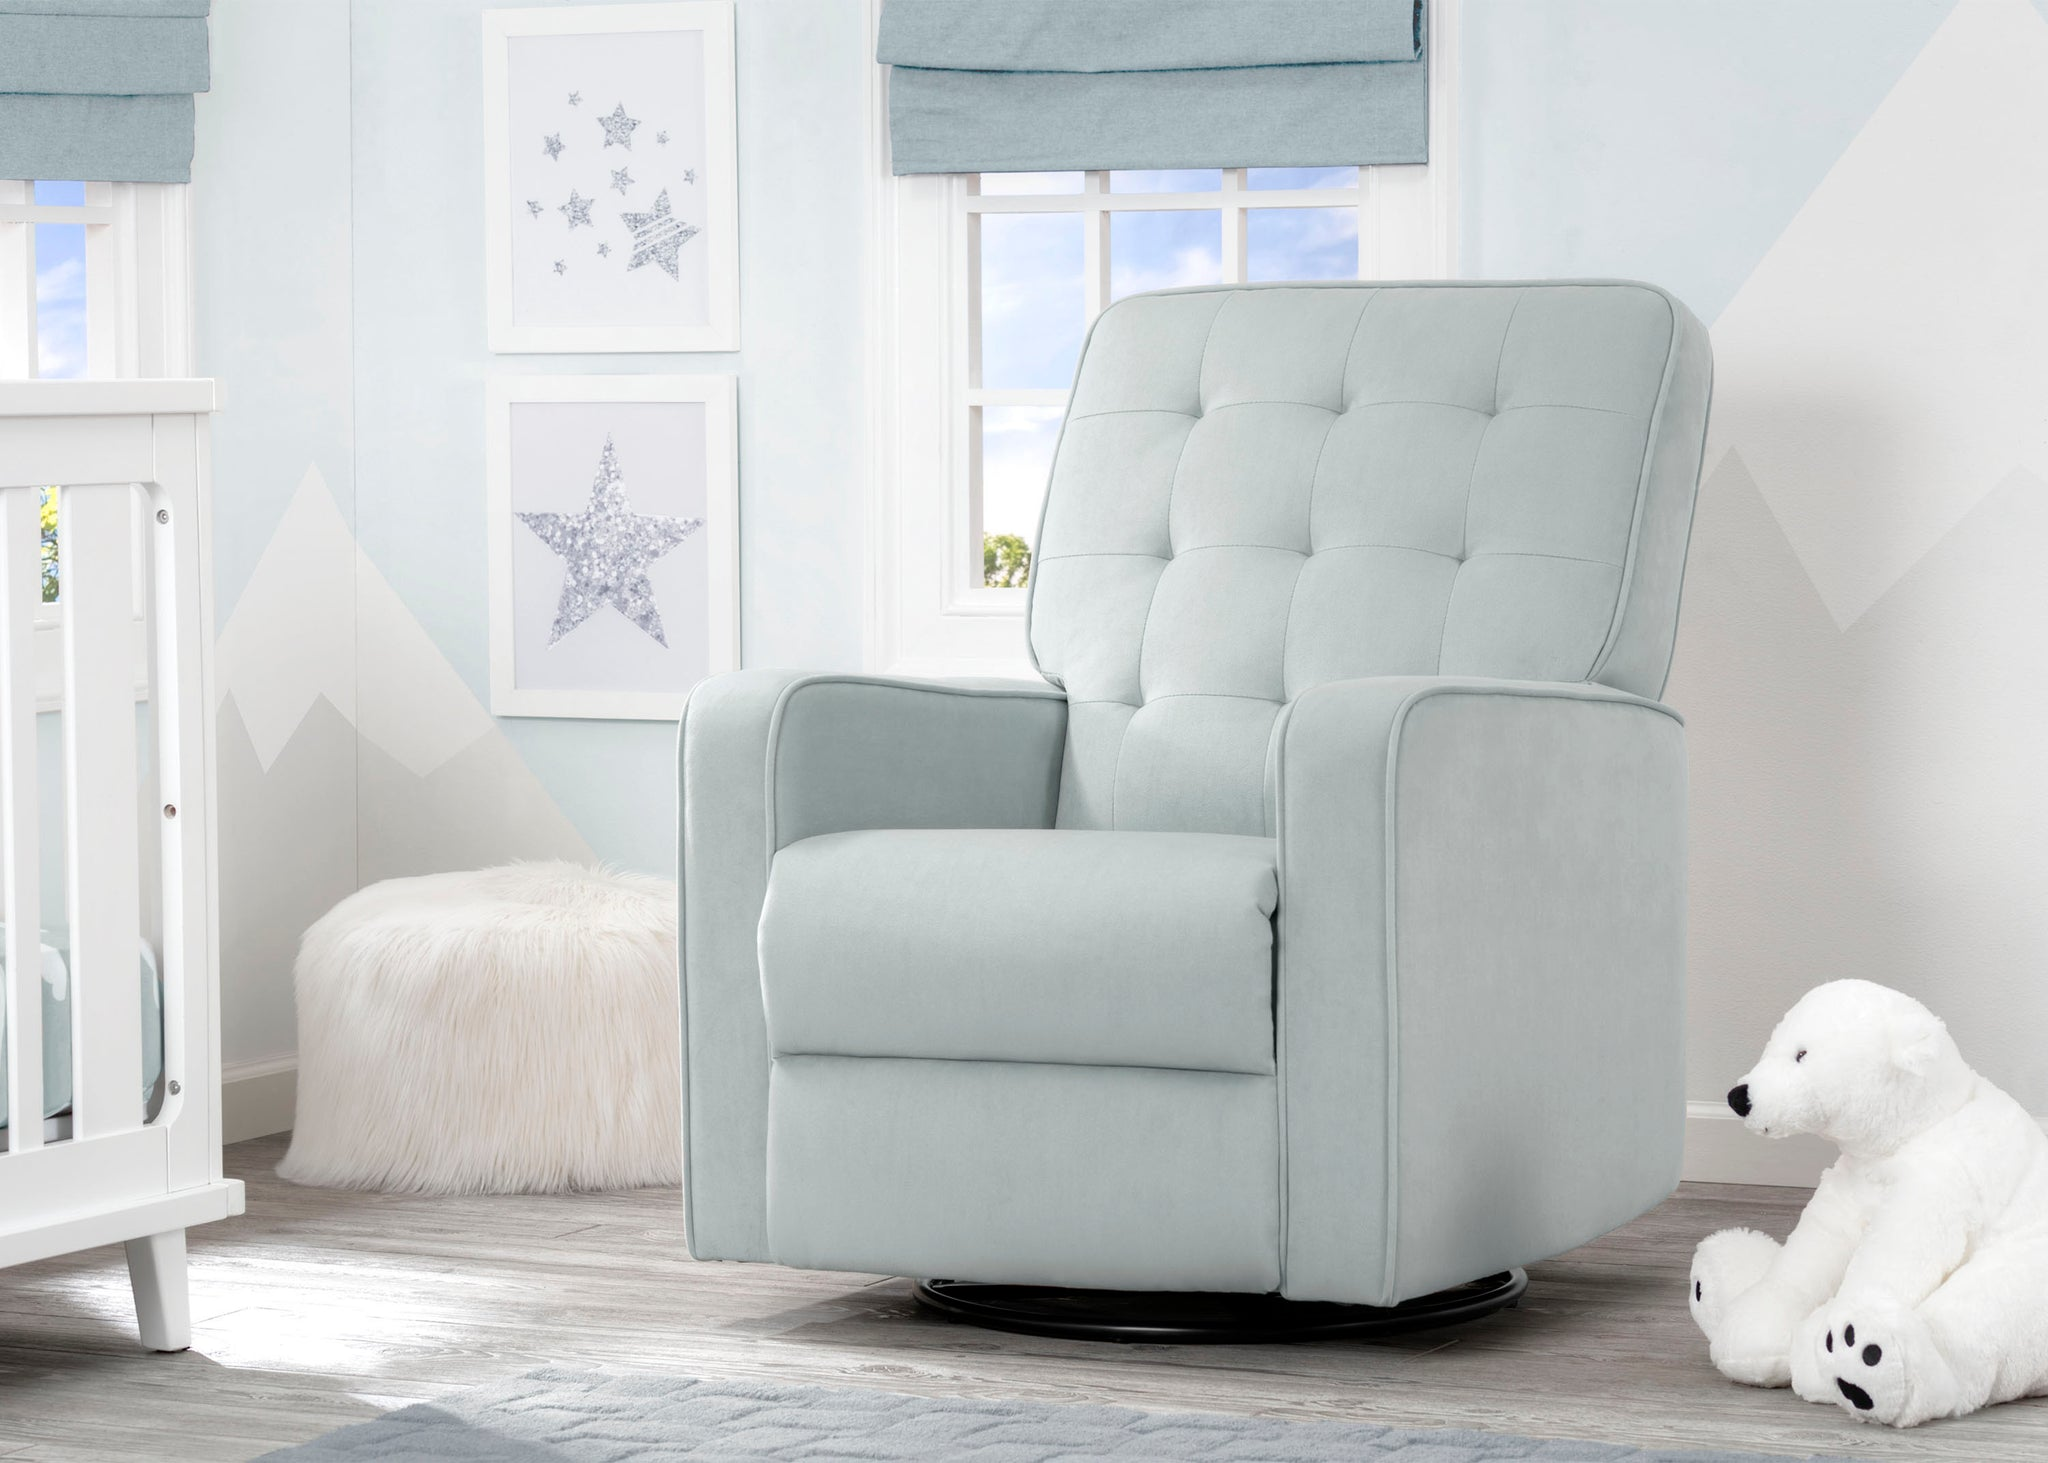 Delta Children Mist (934) Graham Nursery Glider Swivel Recliner, Room View